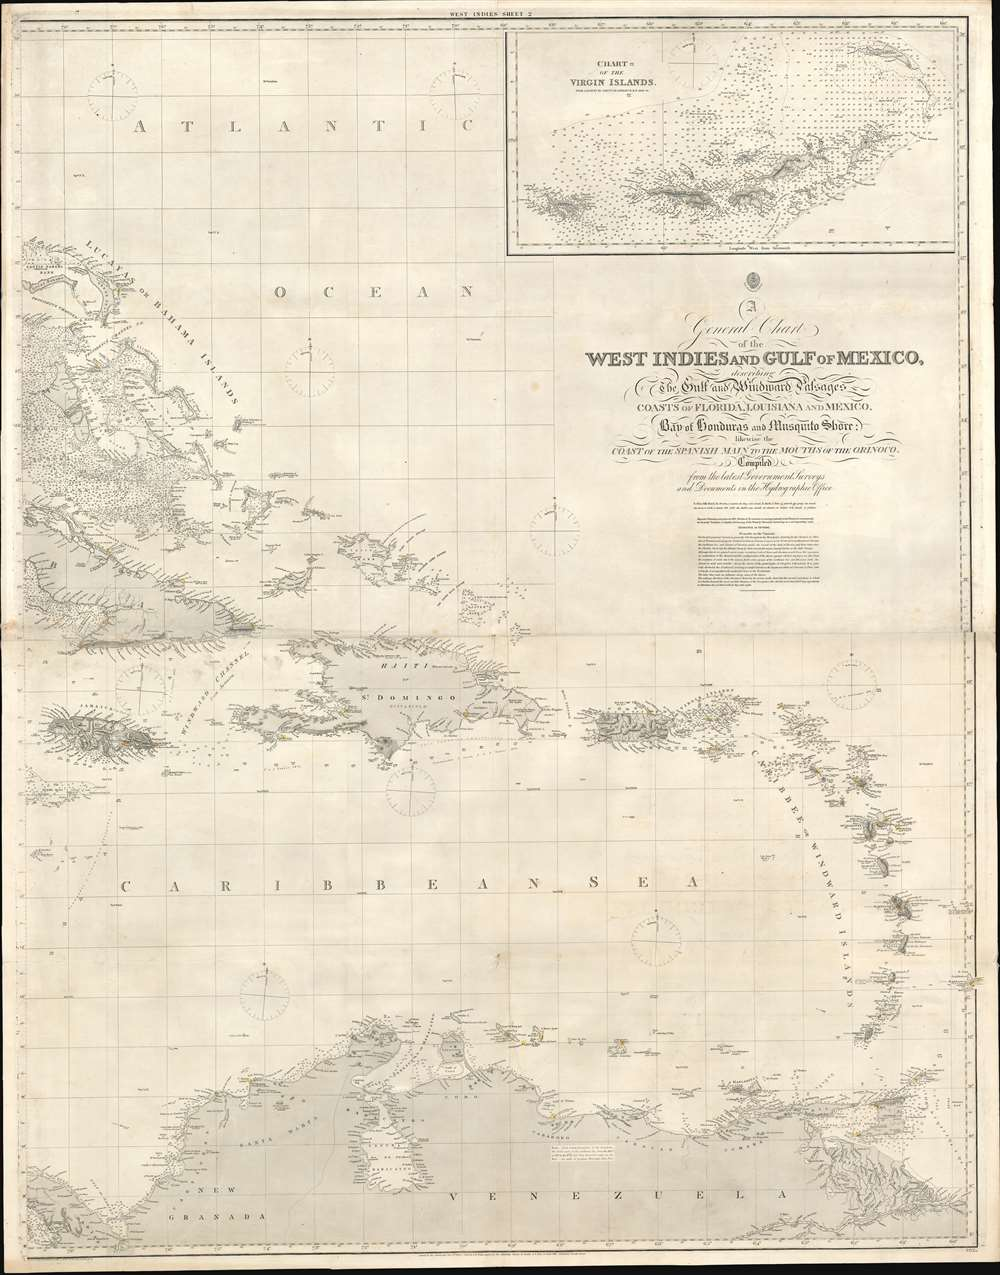 A General Chart of the West Indies and Gulf of Mexico, describing the Gulf and Windward Passages, Coasts of Florida, Louisiana, and Mexico, Bay of Honduras and Musquito Shore; likewise the Coast of the Spanish Main to the Mouths of the Orinoco. - Alternate View 2